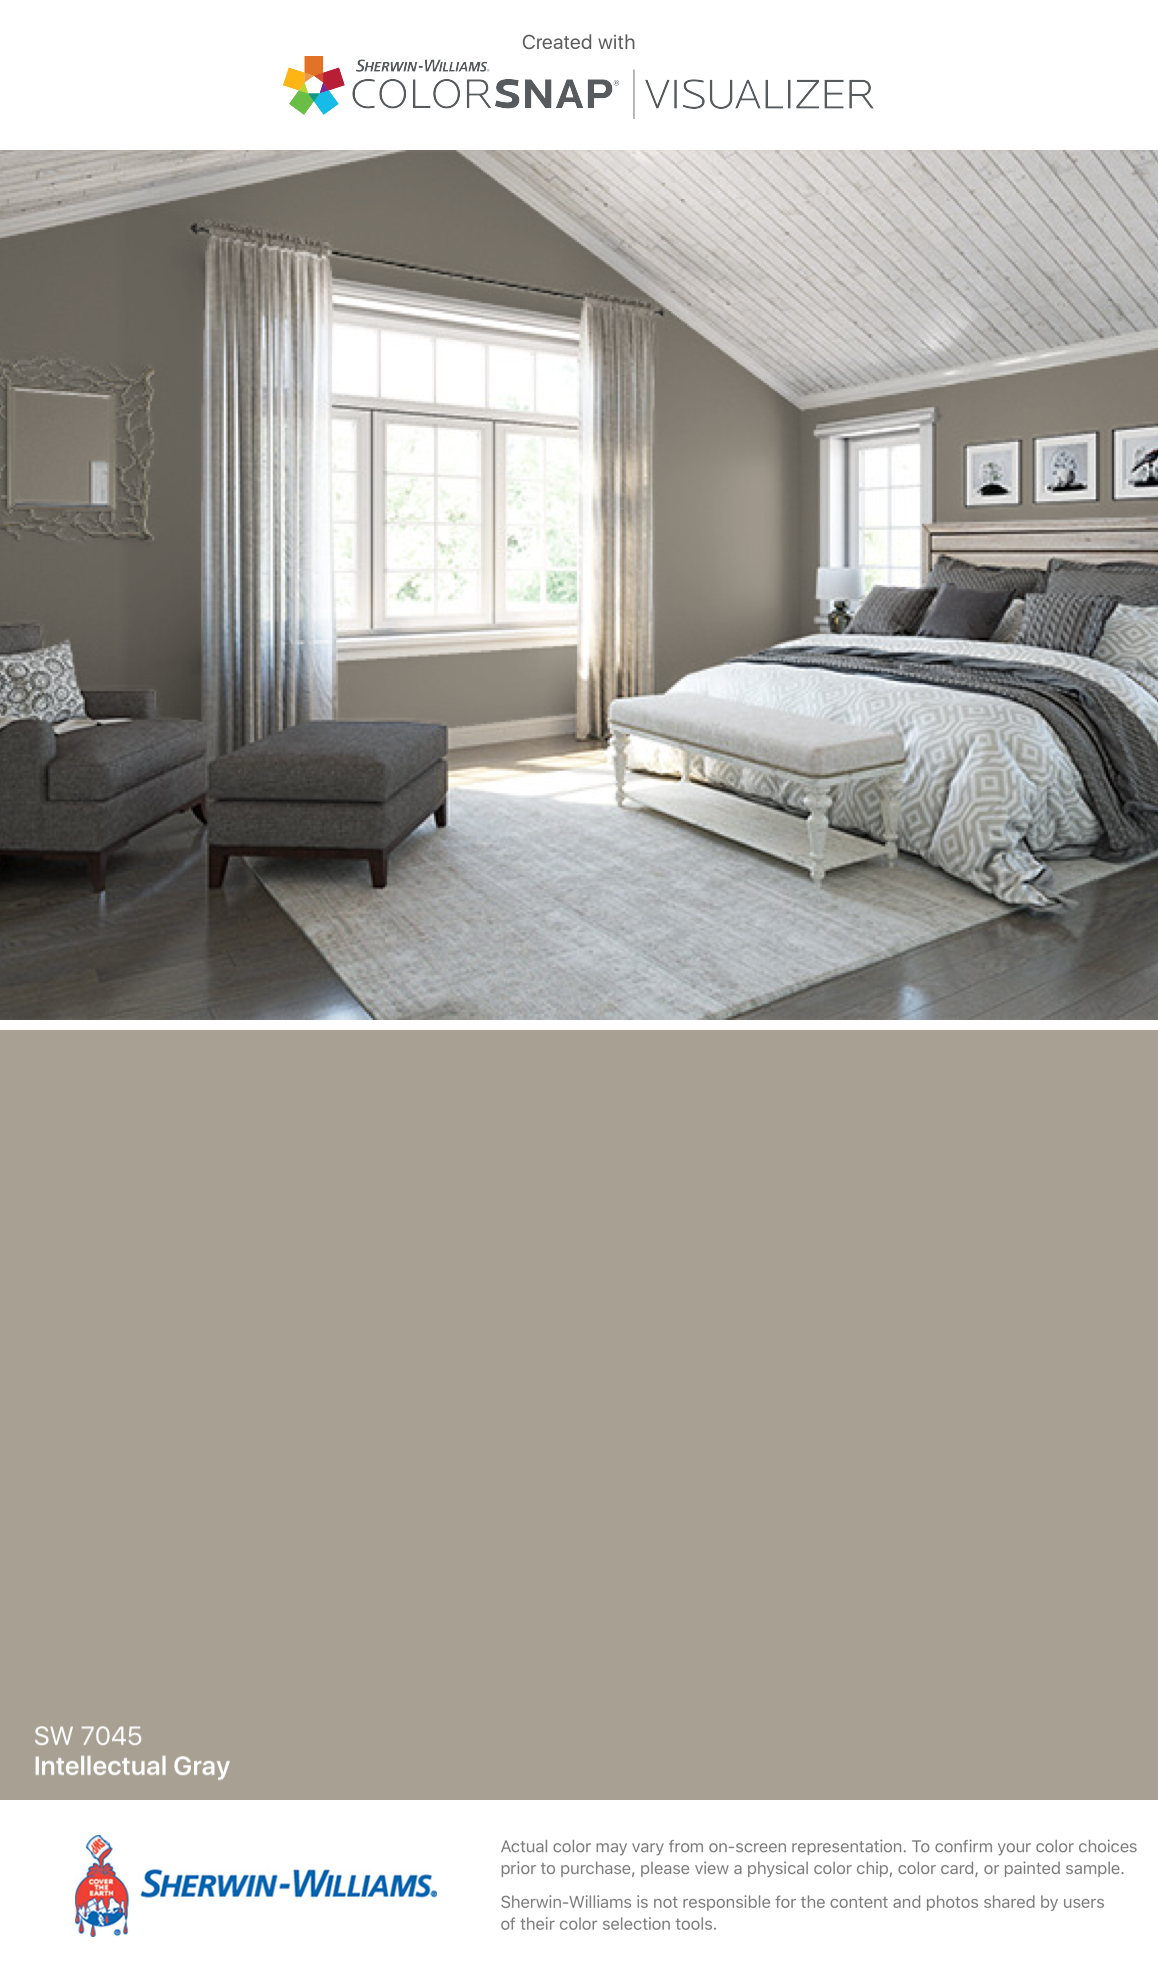 I found this color with colorsnap visualizer for iphone by sherwin williams intellectual gray sw 7045